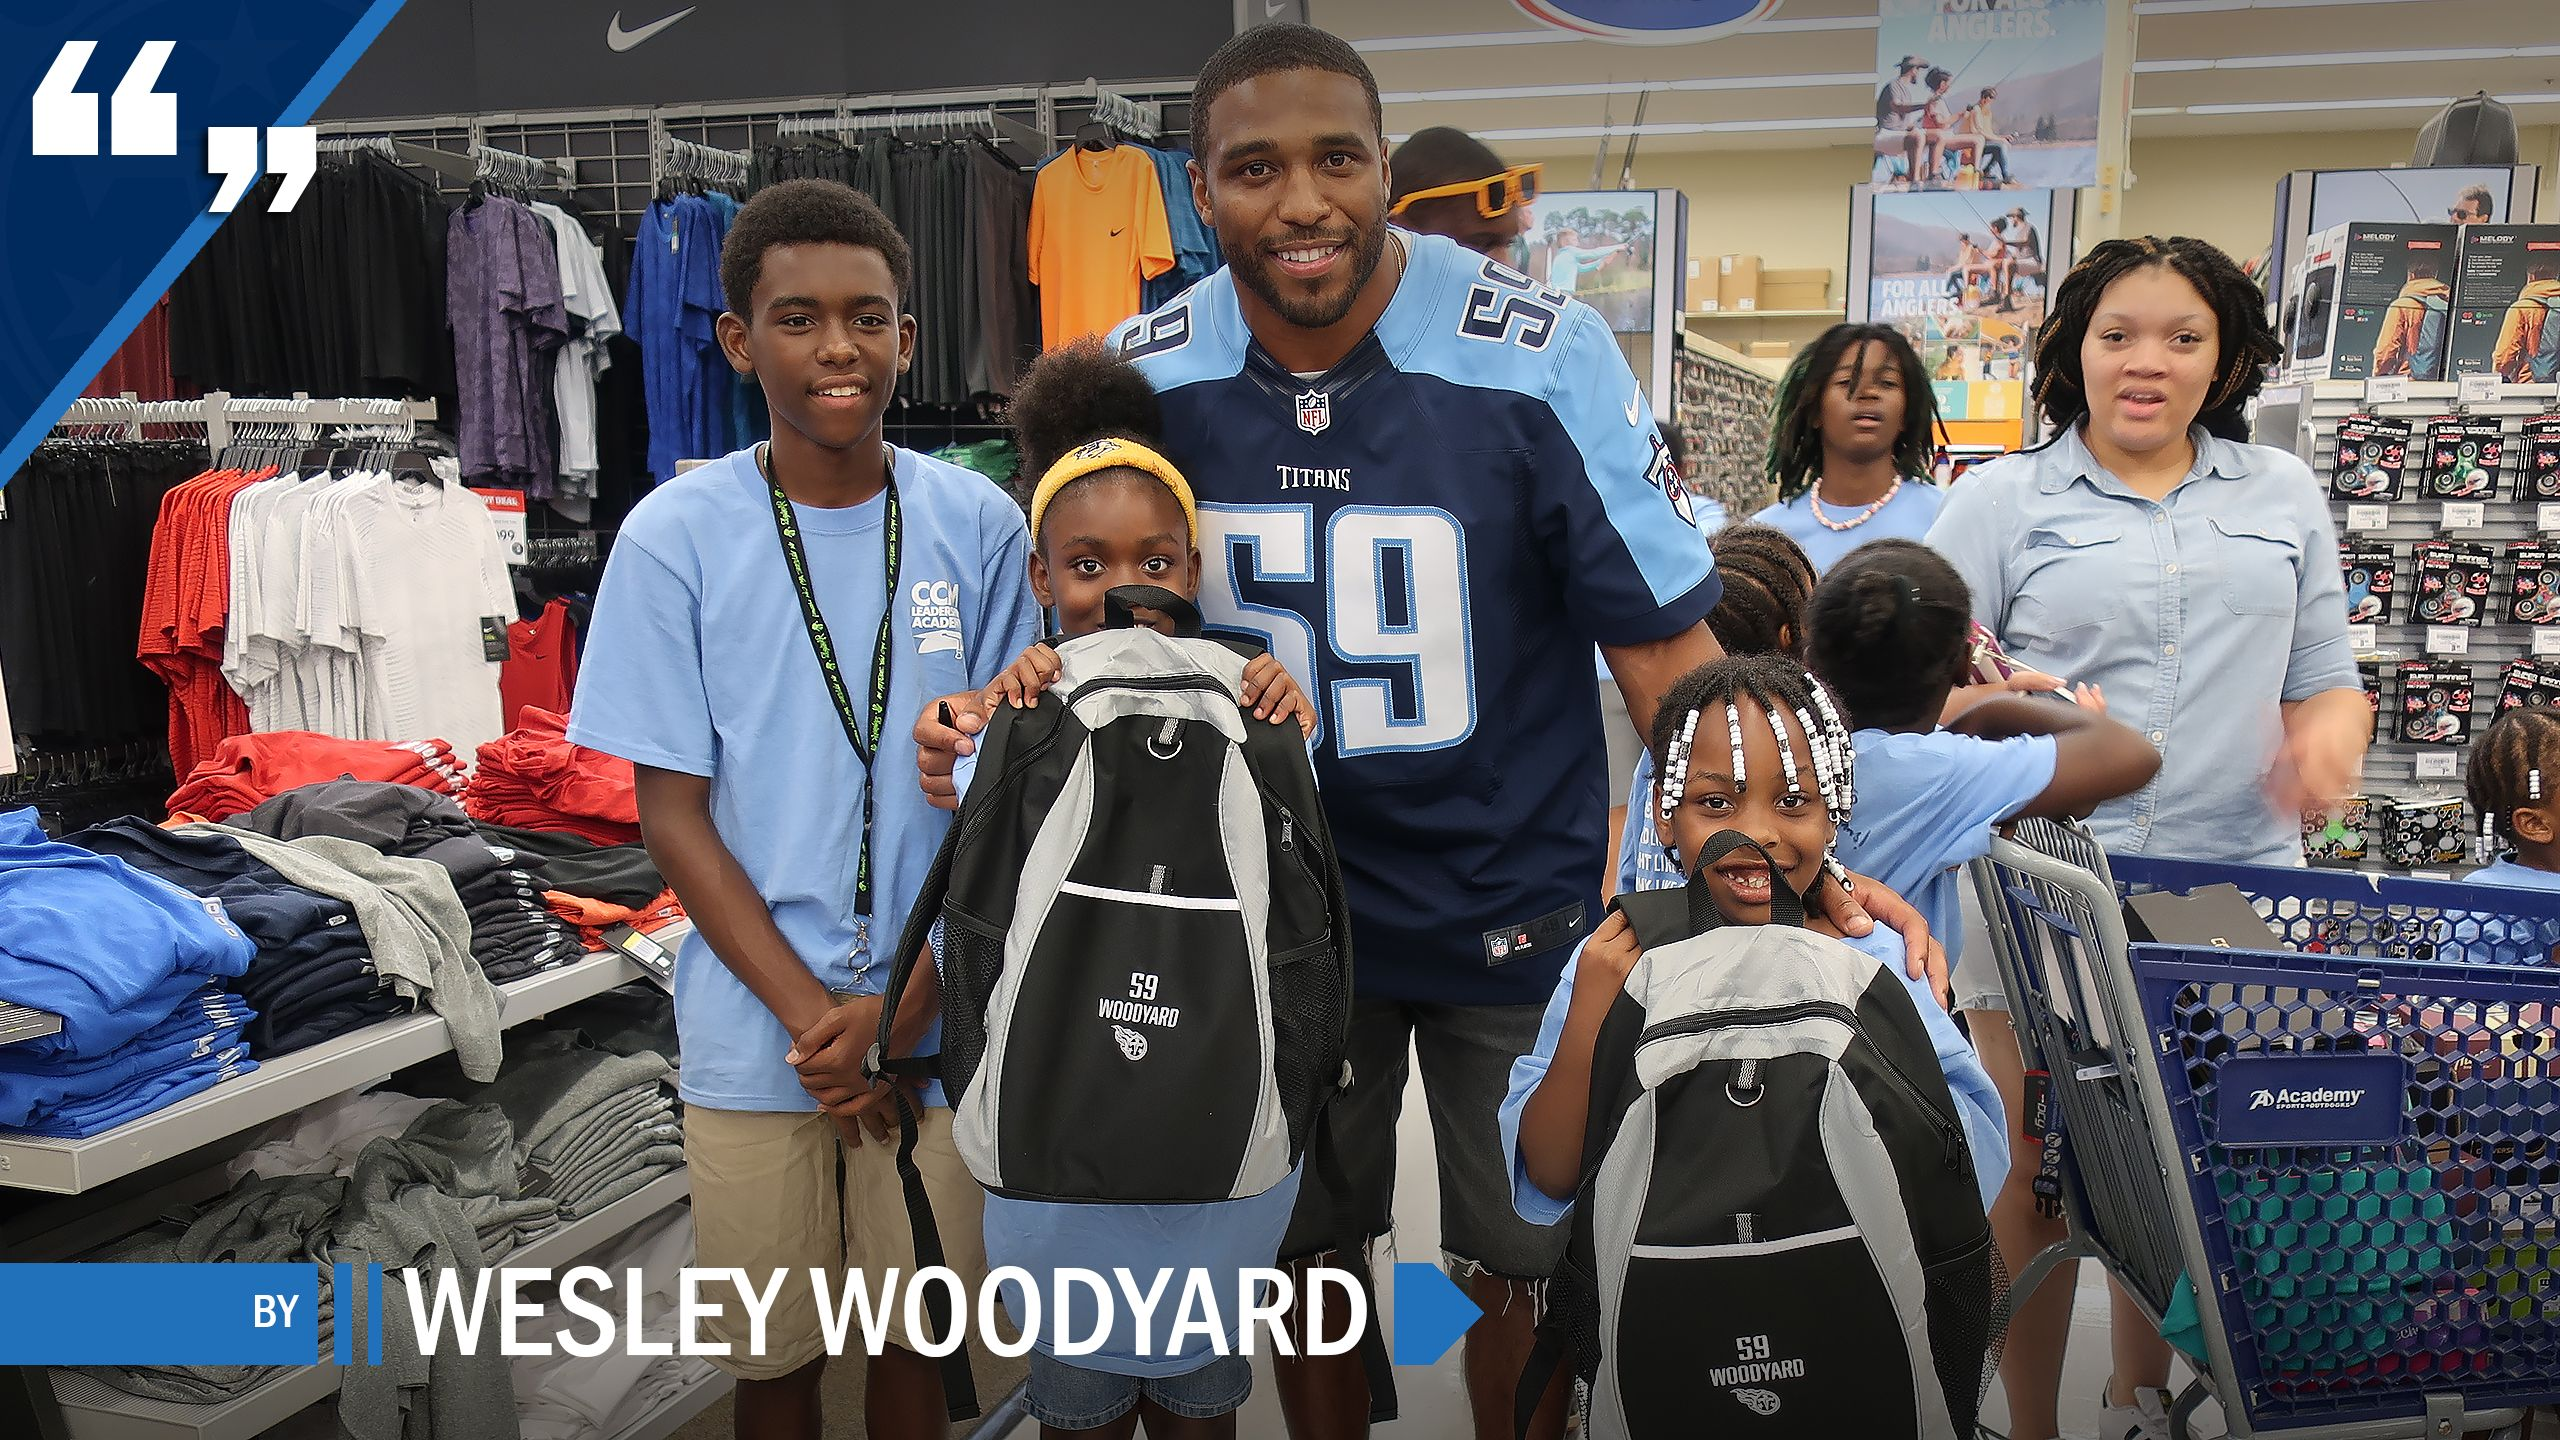 THIS IS MY STORY  //  by Wesley Woodyard